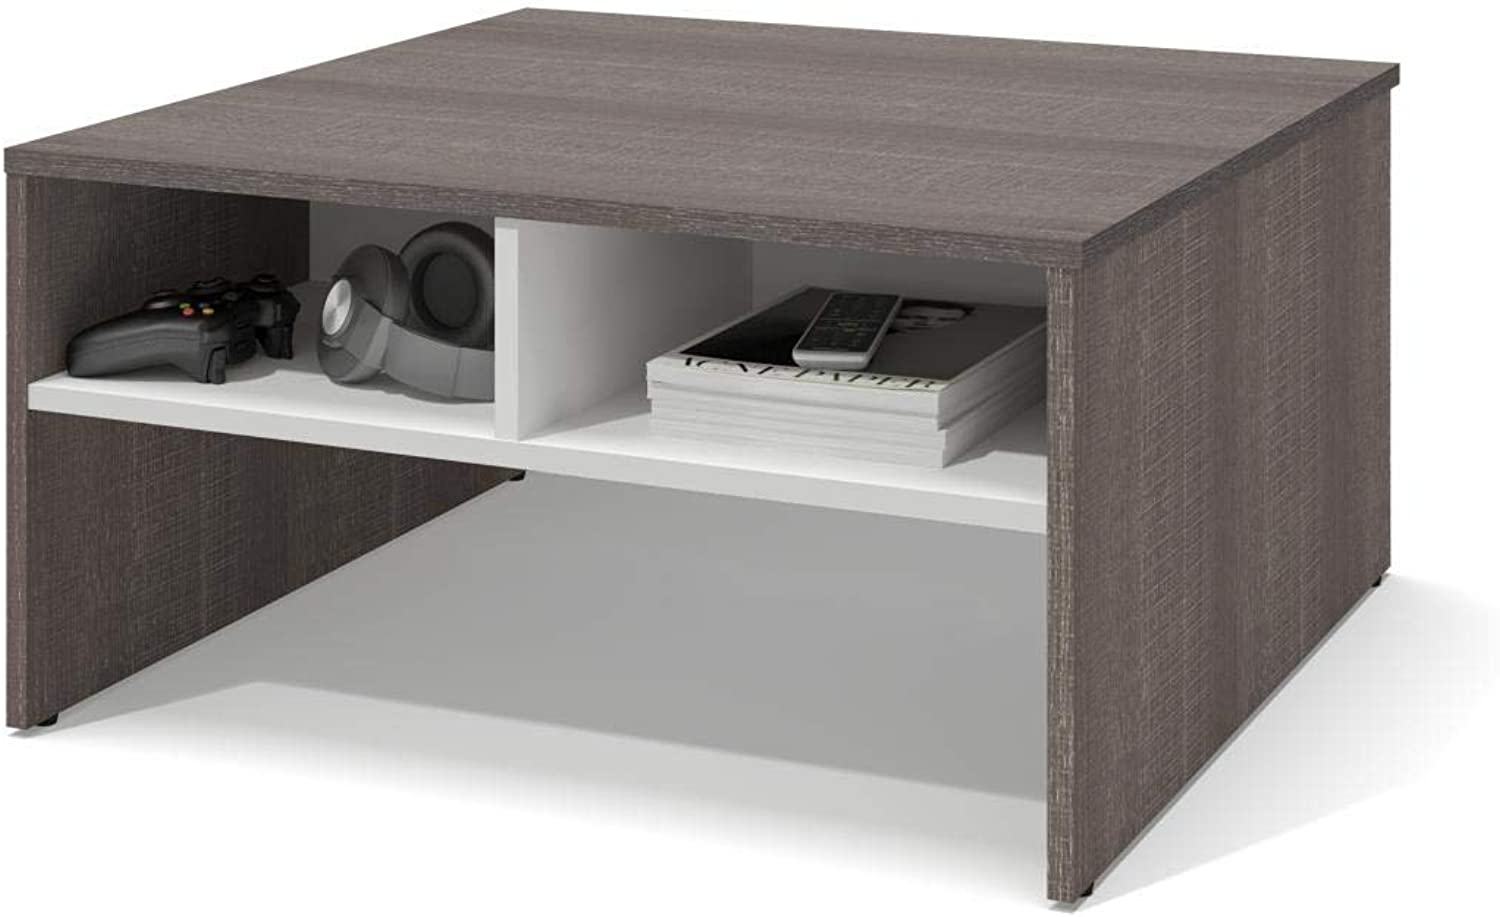 """29.5"""" Coffee Table with Storage - Small Space by Bestar"""